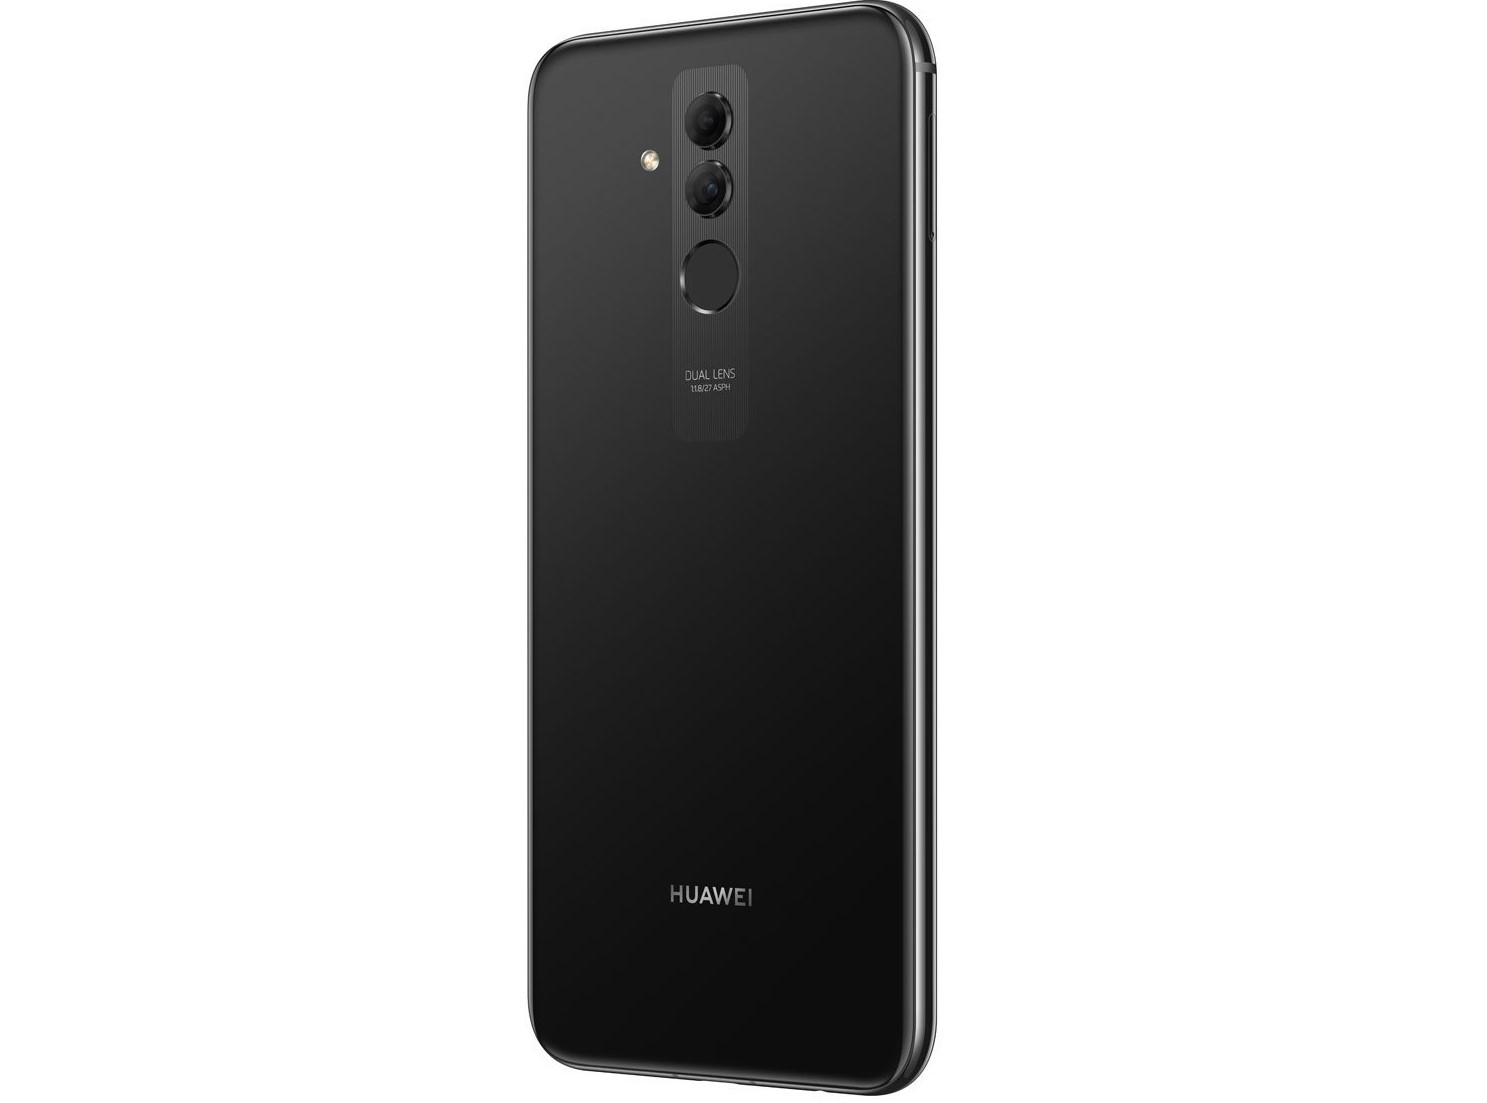 Huawei Mate 20 Lite Smartphone Review